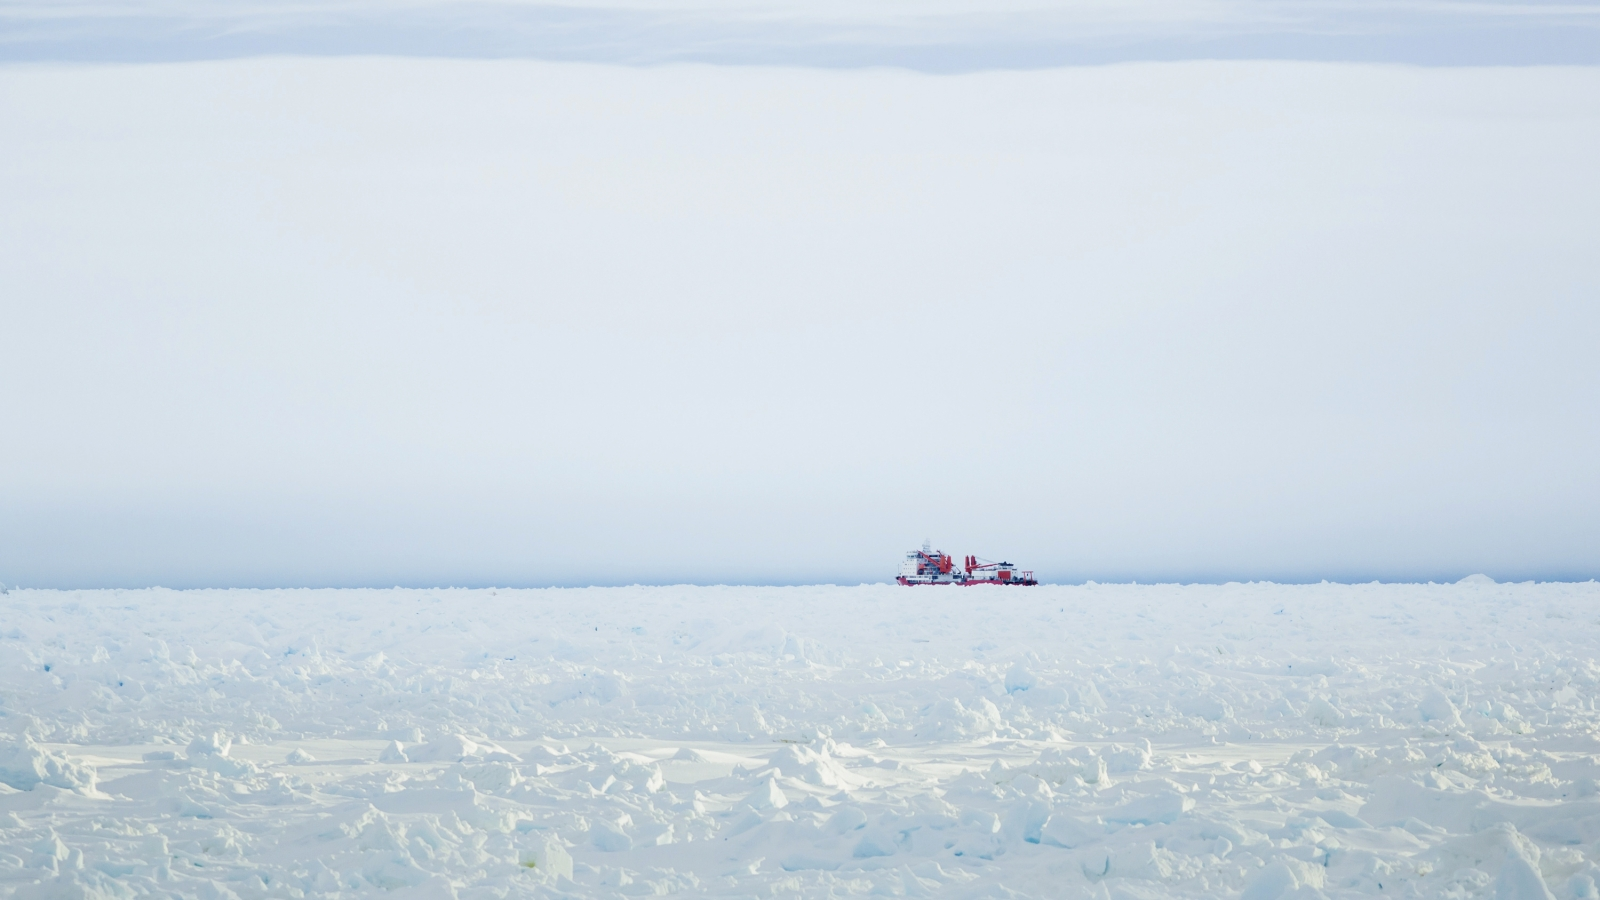 China planning airfield in Antarctica